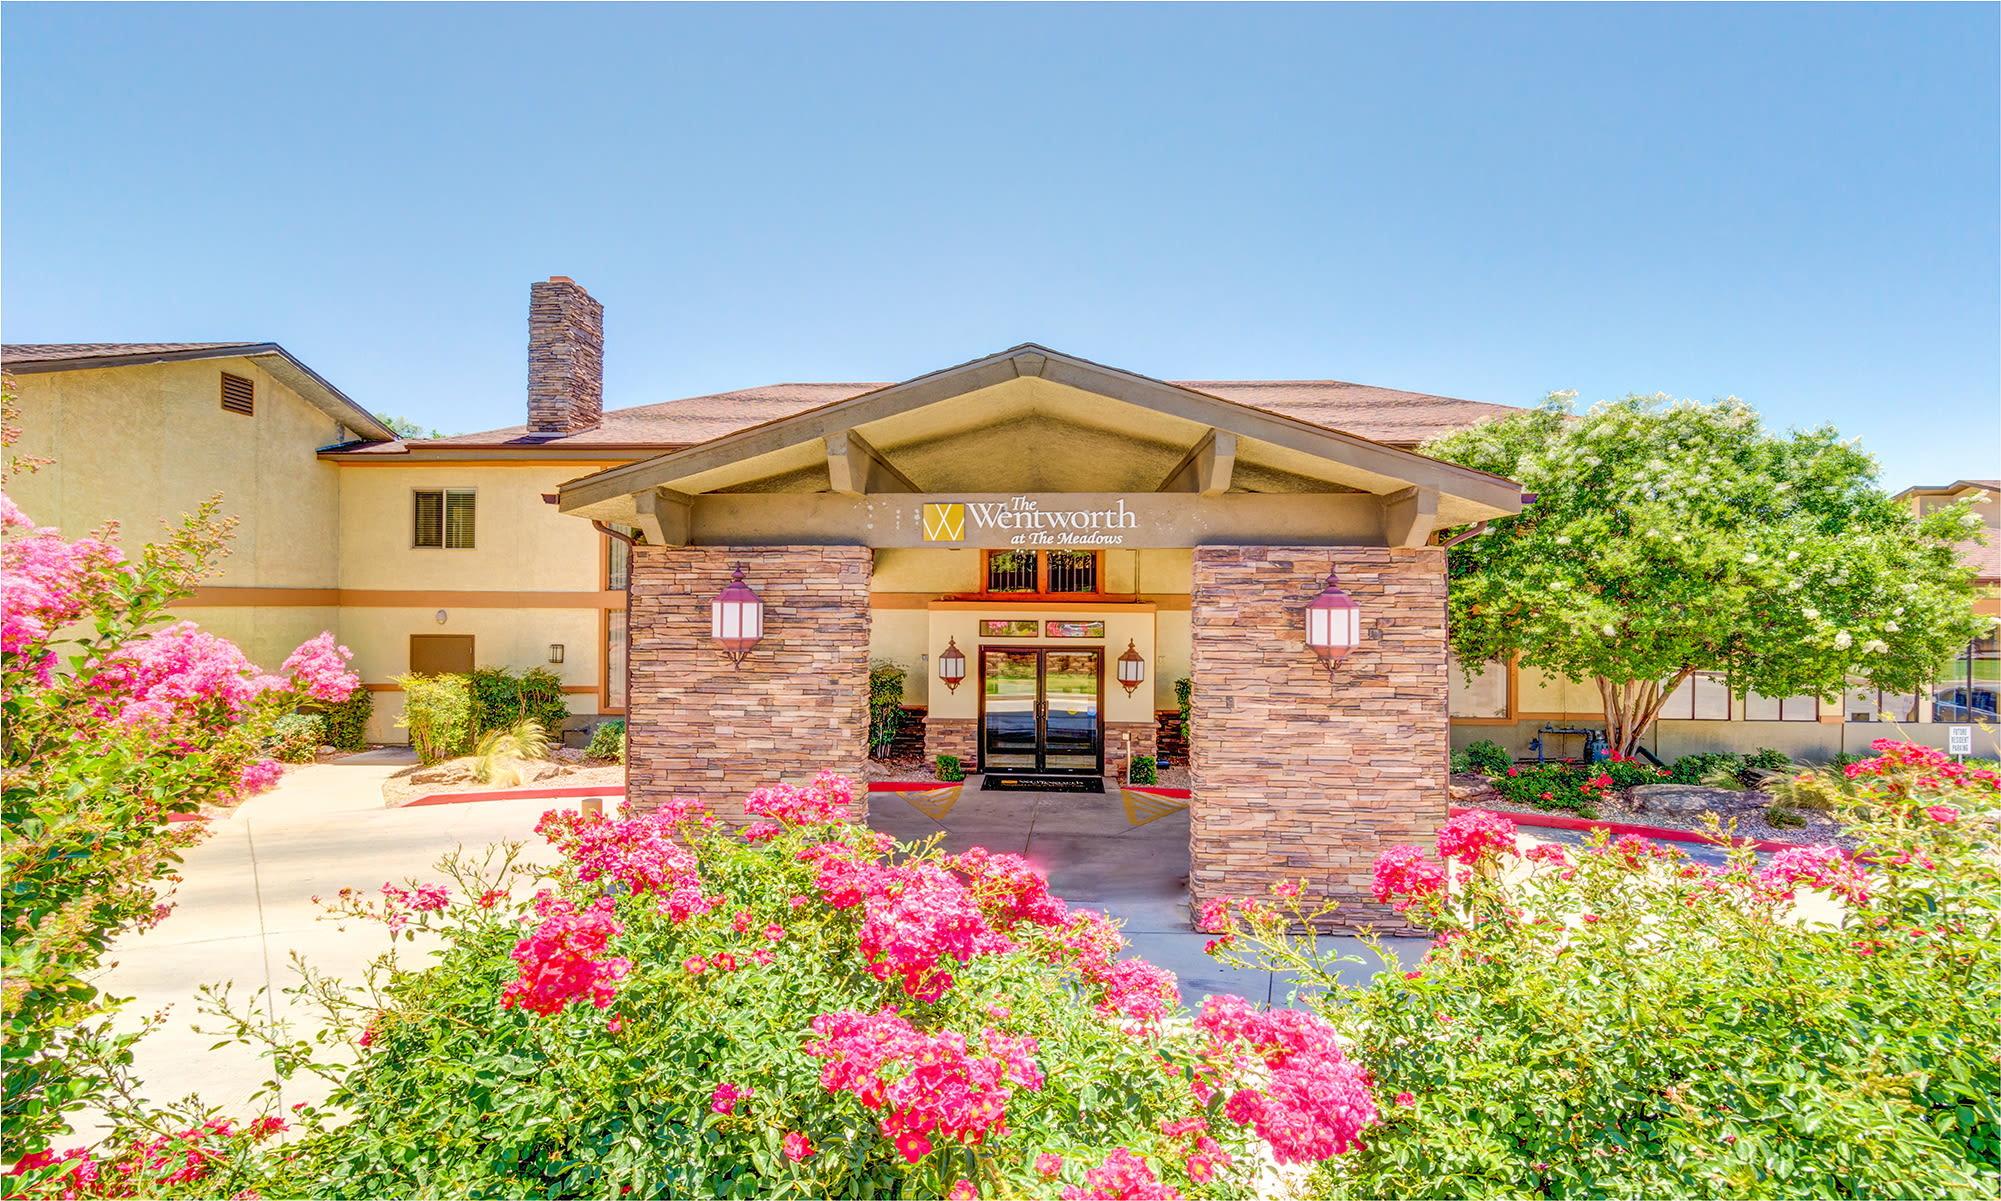 Senior living community in Saint George has an open common room